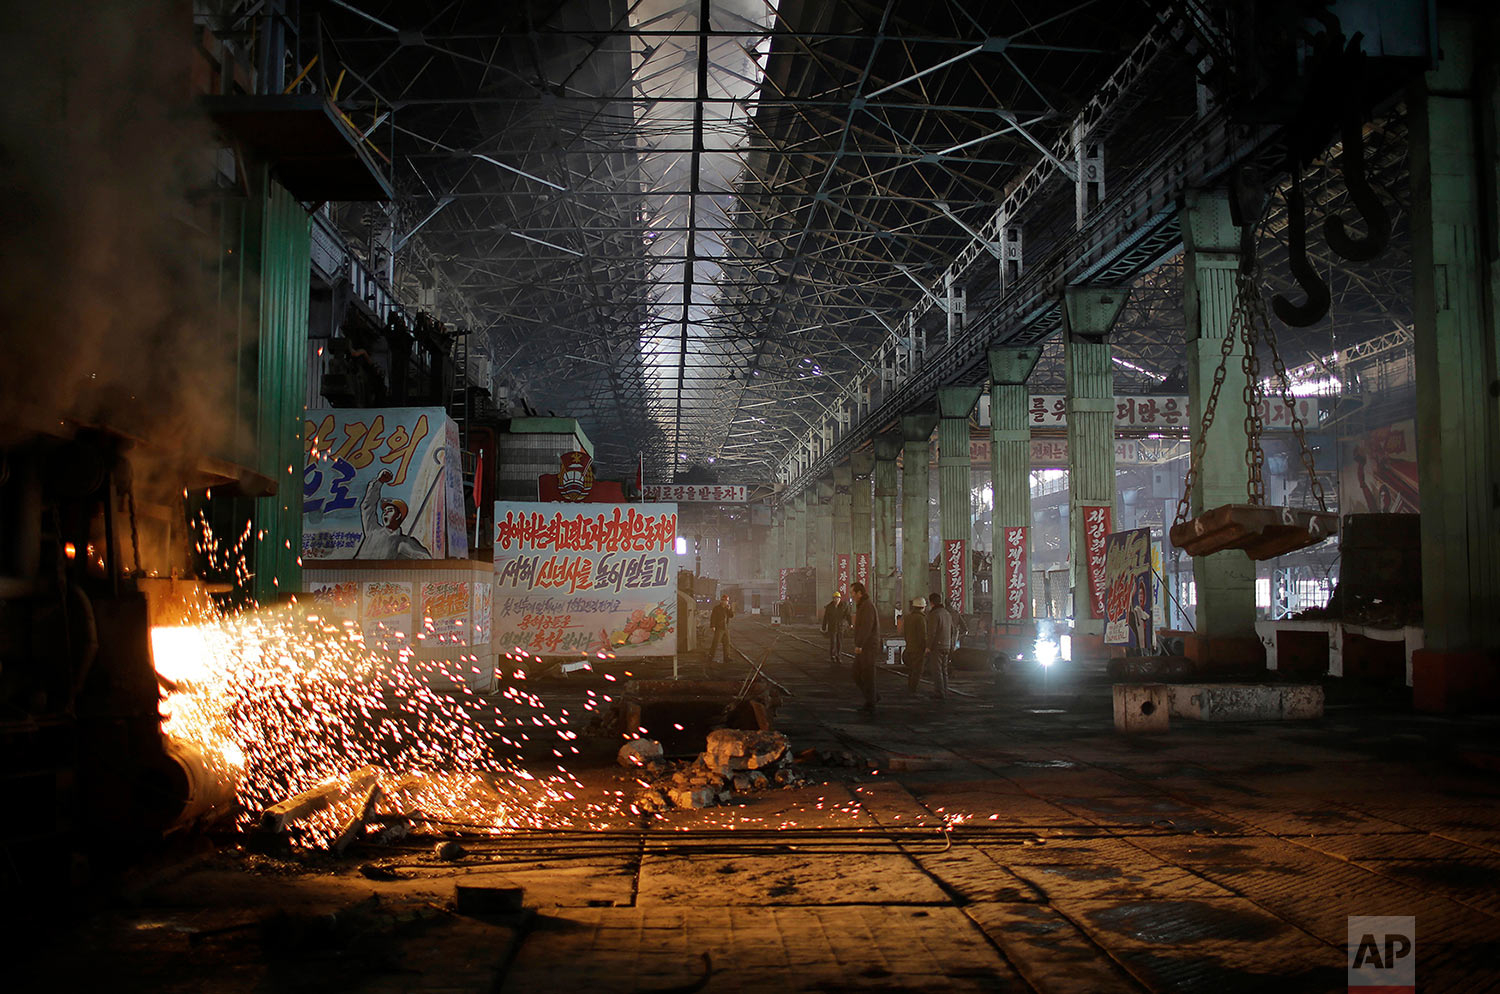 A shaft of light from a furnace shines through the Chollima Steel Complex in Nampo, North Korea, on Jan. 7, 2017. One of seven North Korean steel works, Chollima has more than 8,000 workers and is among the North's showcase enterprises. (AP Photo/Wong Maye-E)